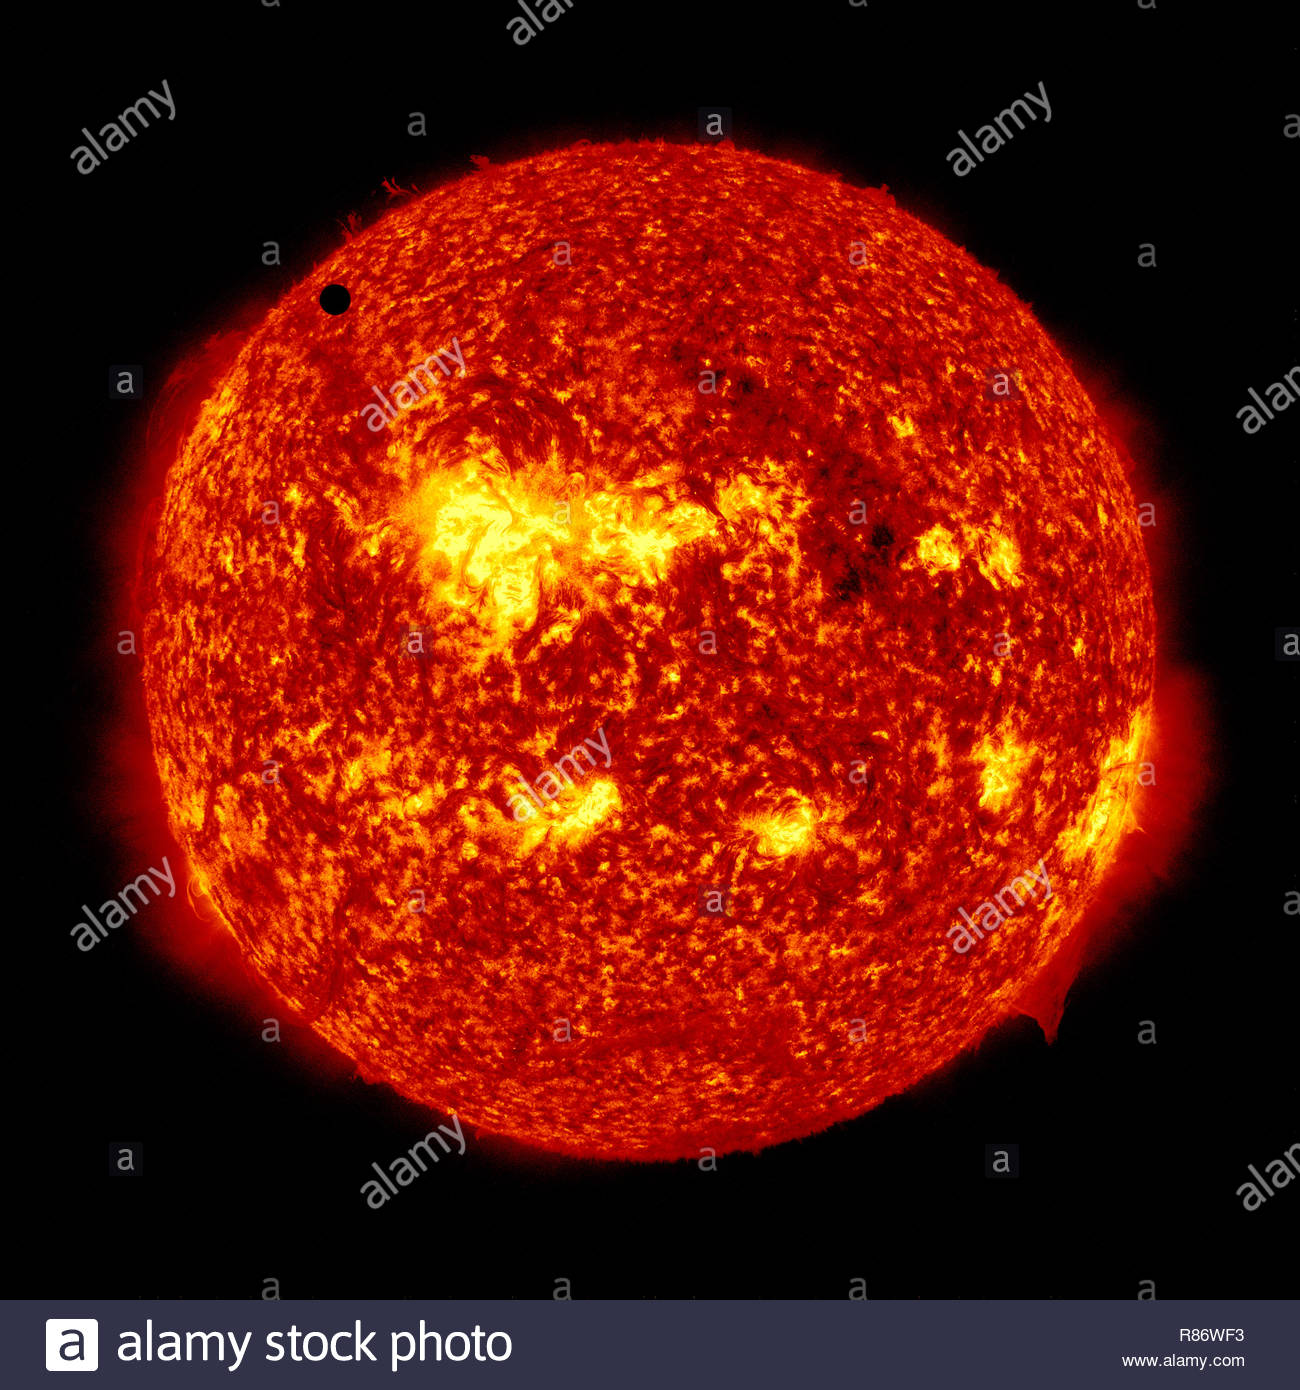 The Transit of Venus 2012. Planet Venus passes as a small dark spot in the face of the Sun. Raw images by NASA. Digitally enhanced by contributor - Stock Image